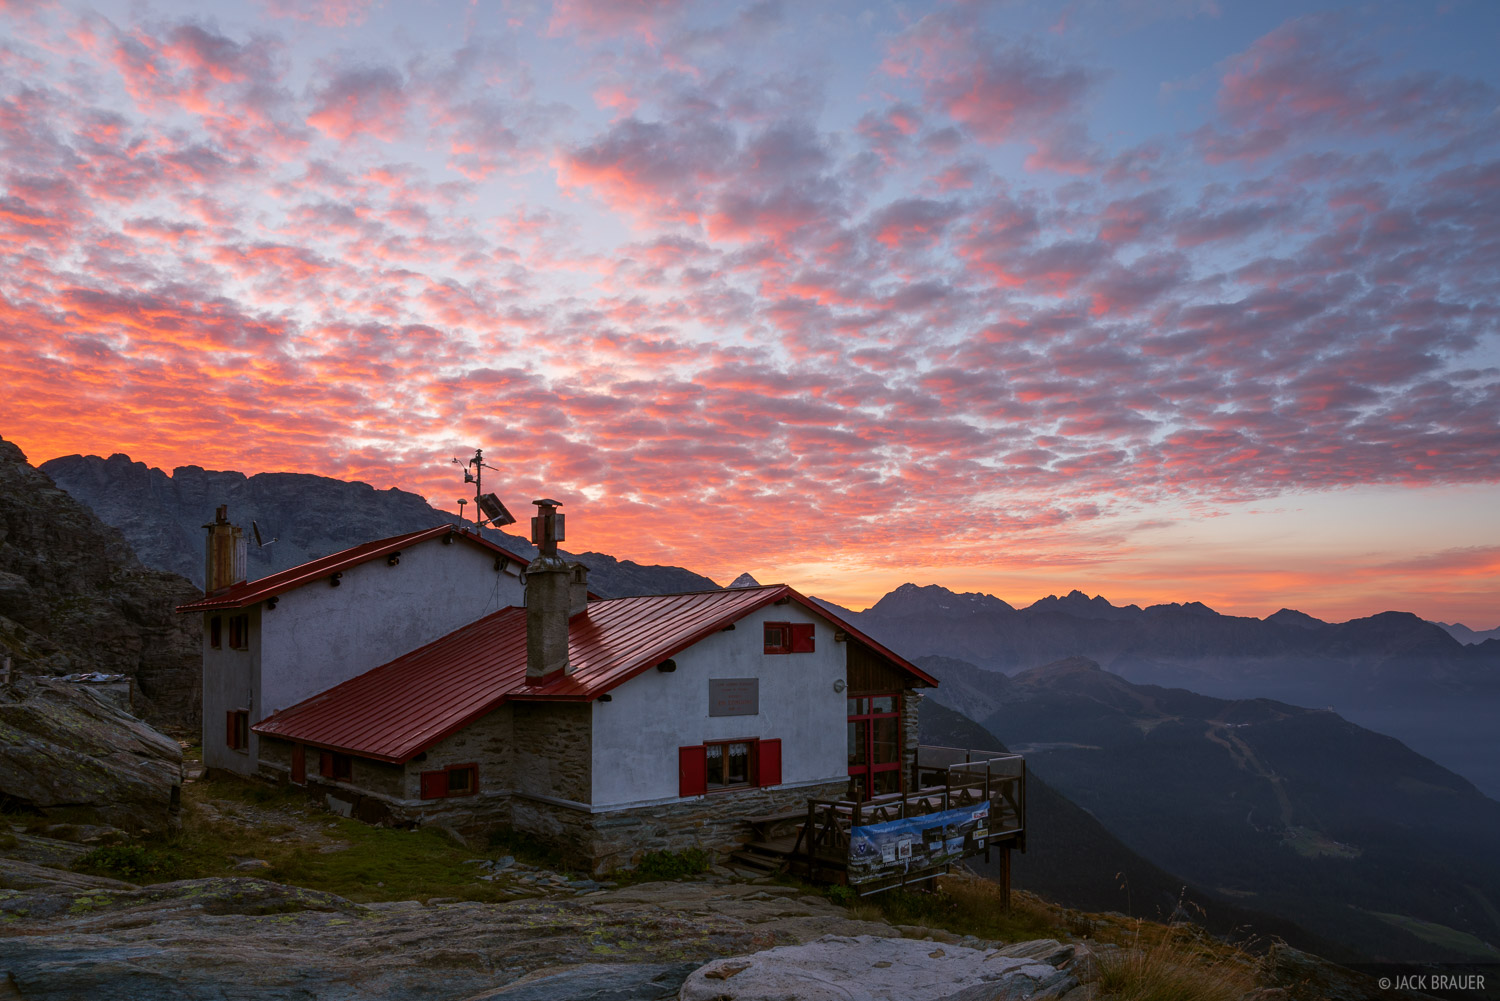 A beautiful sunrise over Rifugio Longoni.